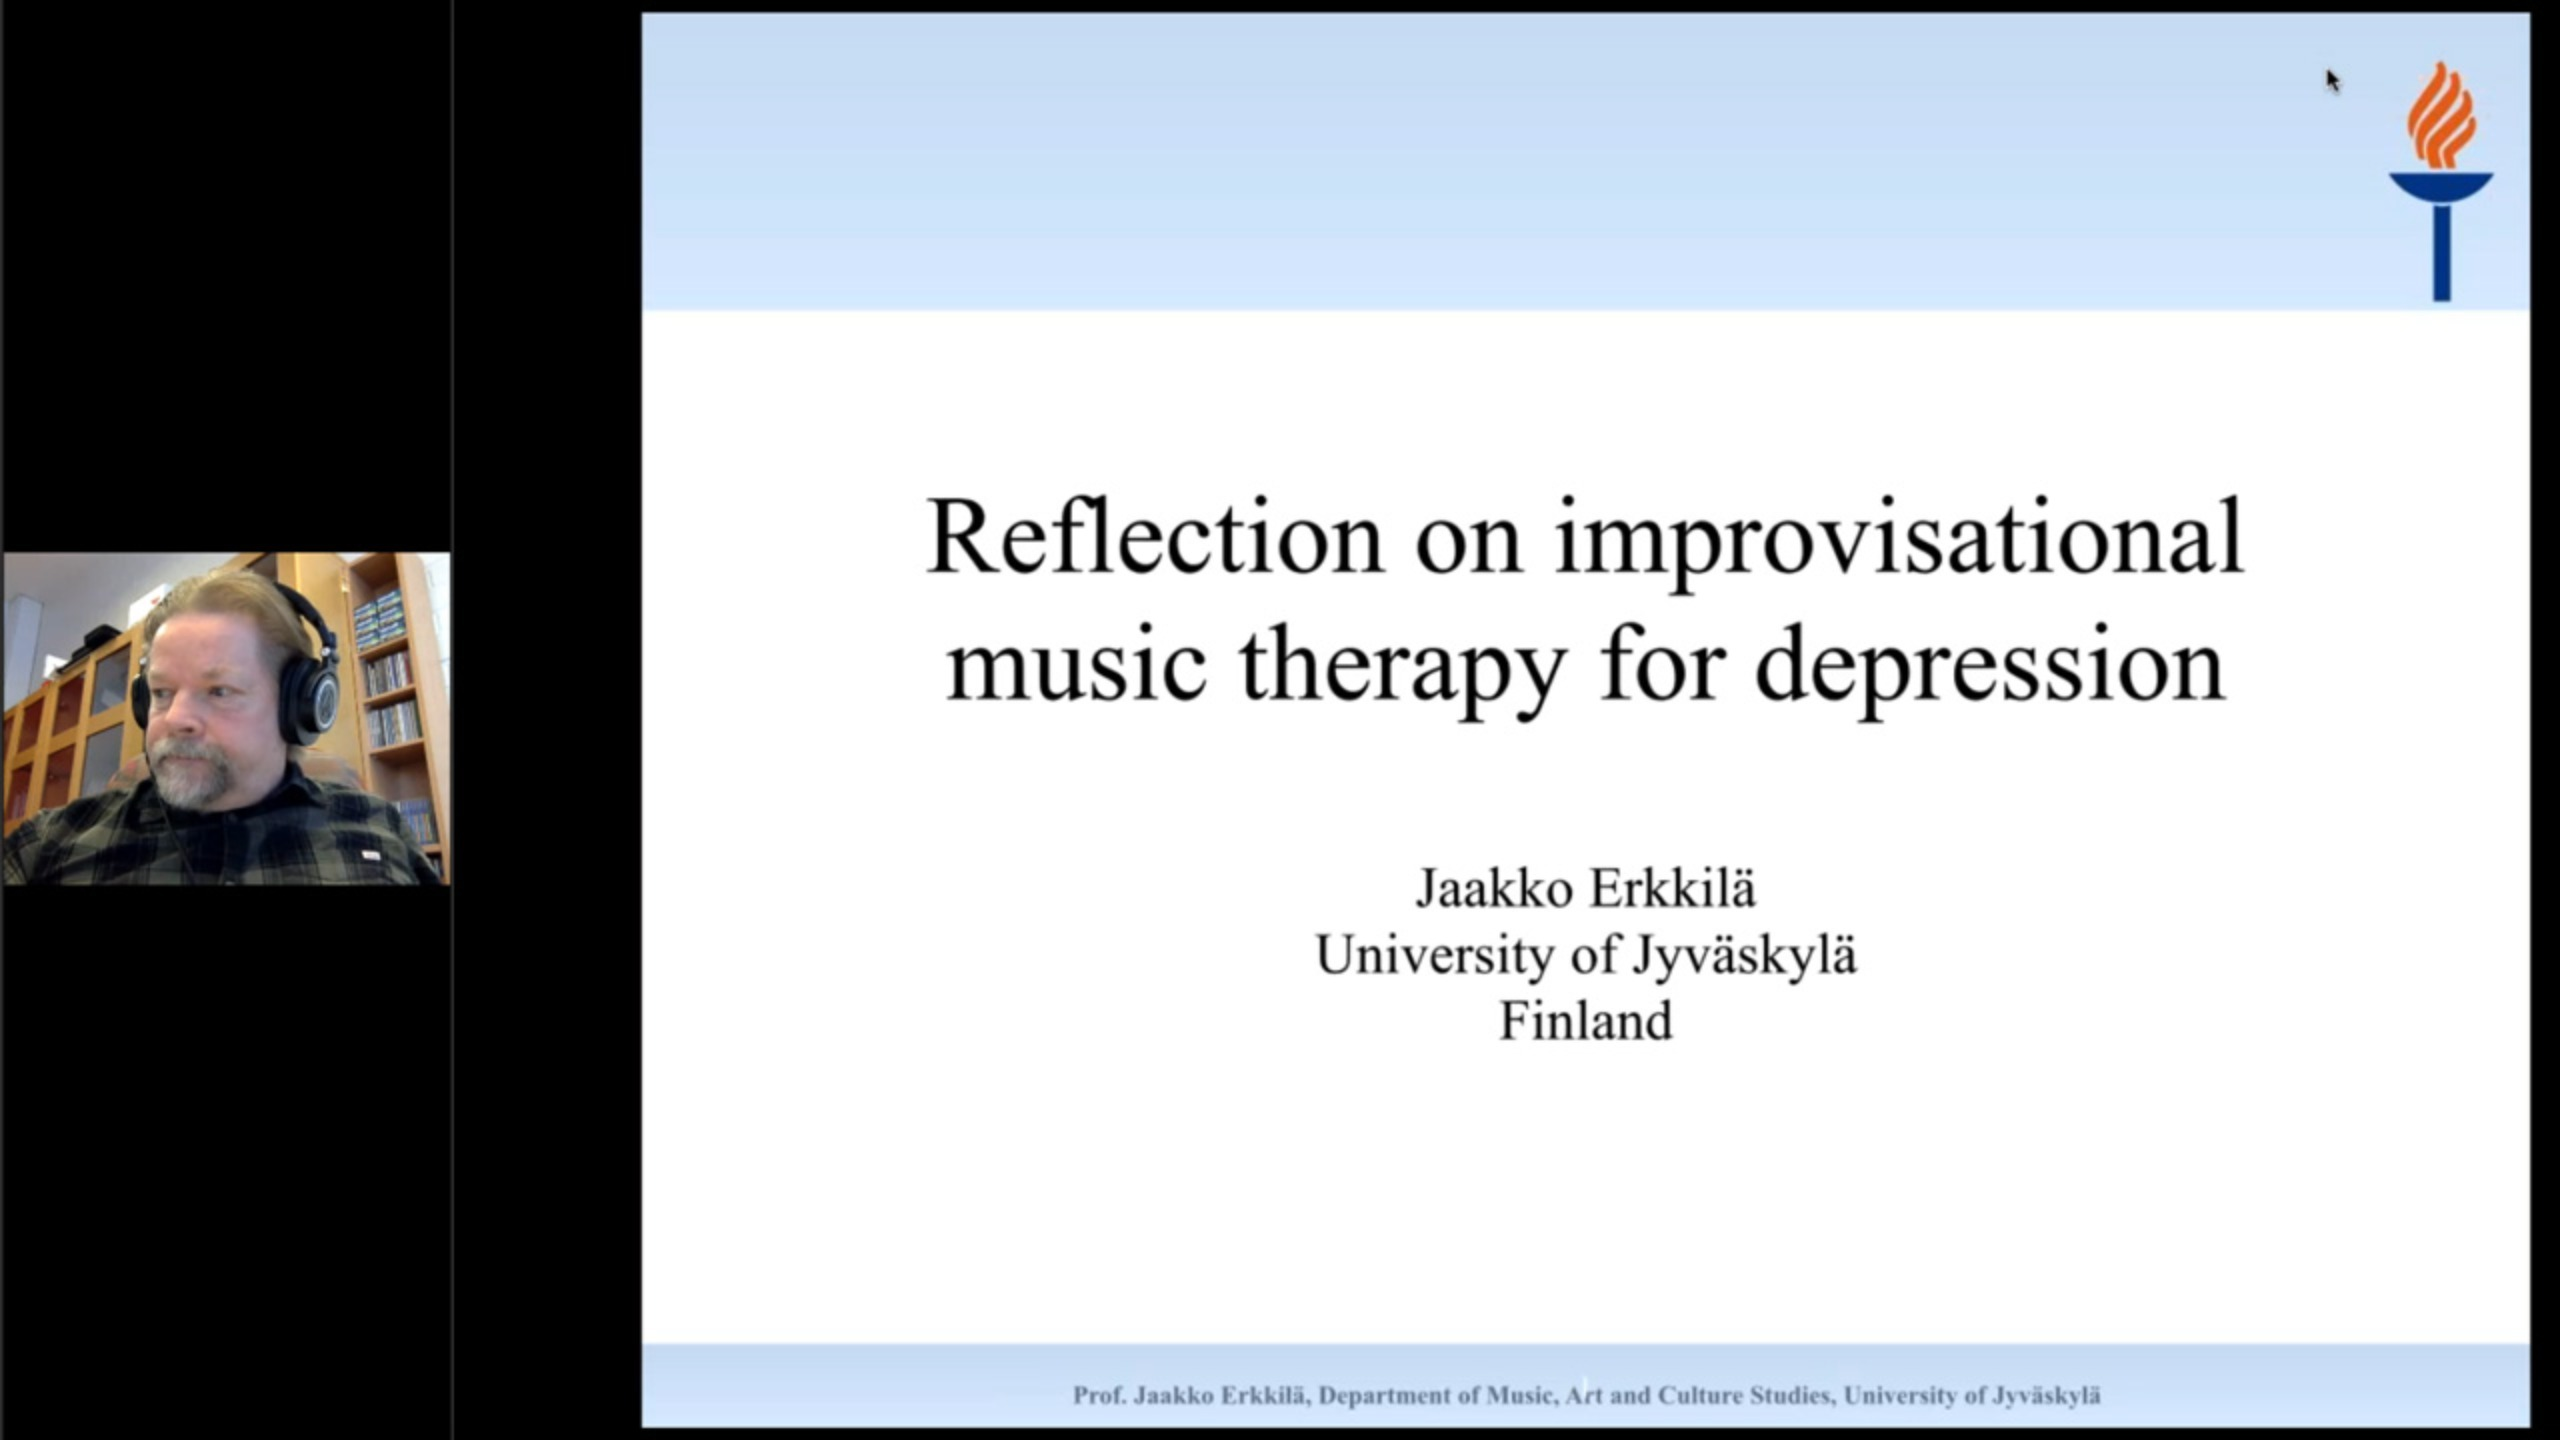 Keynote: Reflection on improvisational music therapy for depression